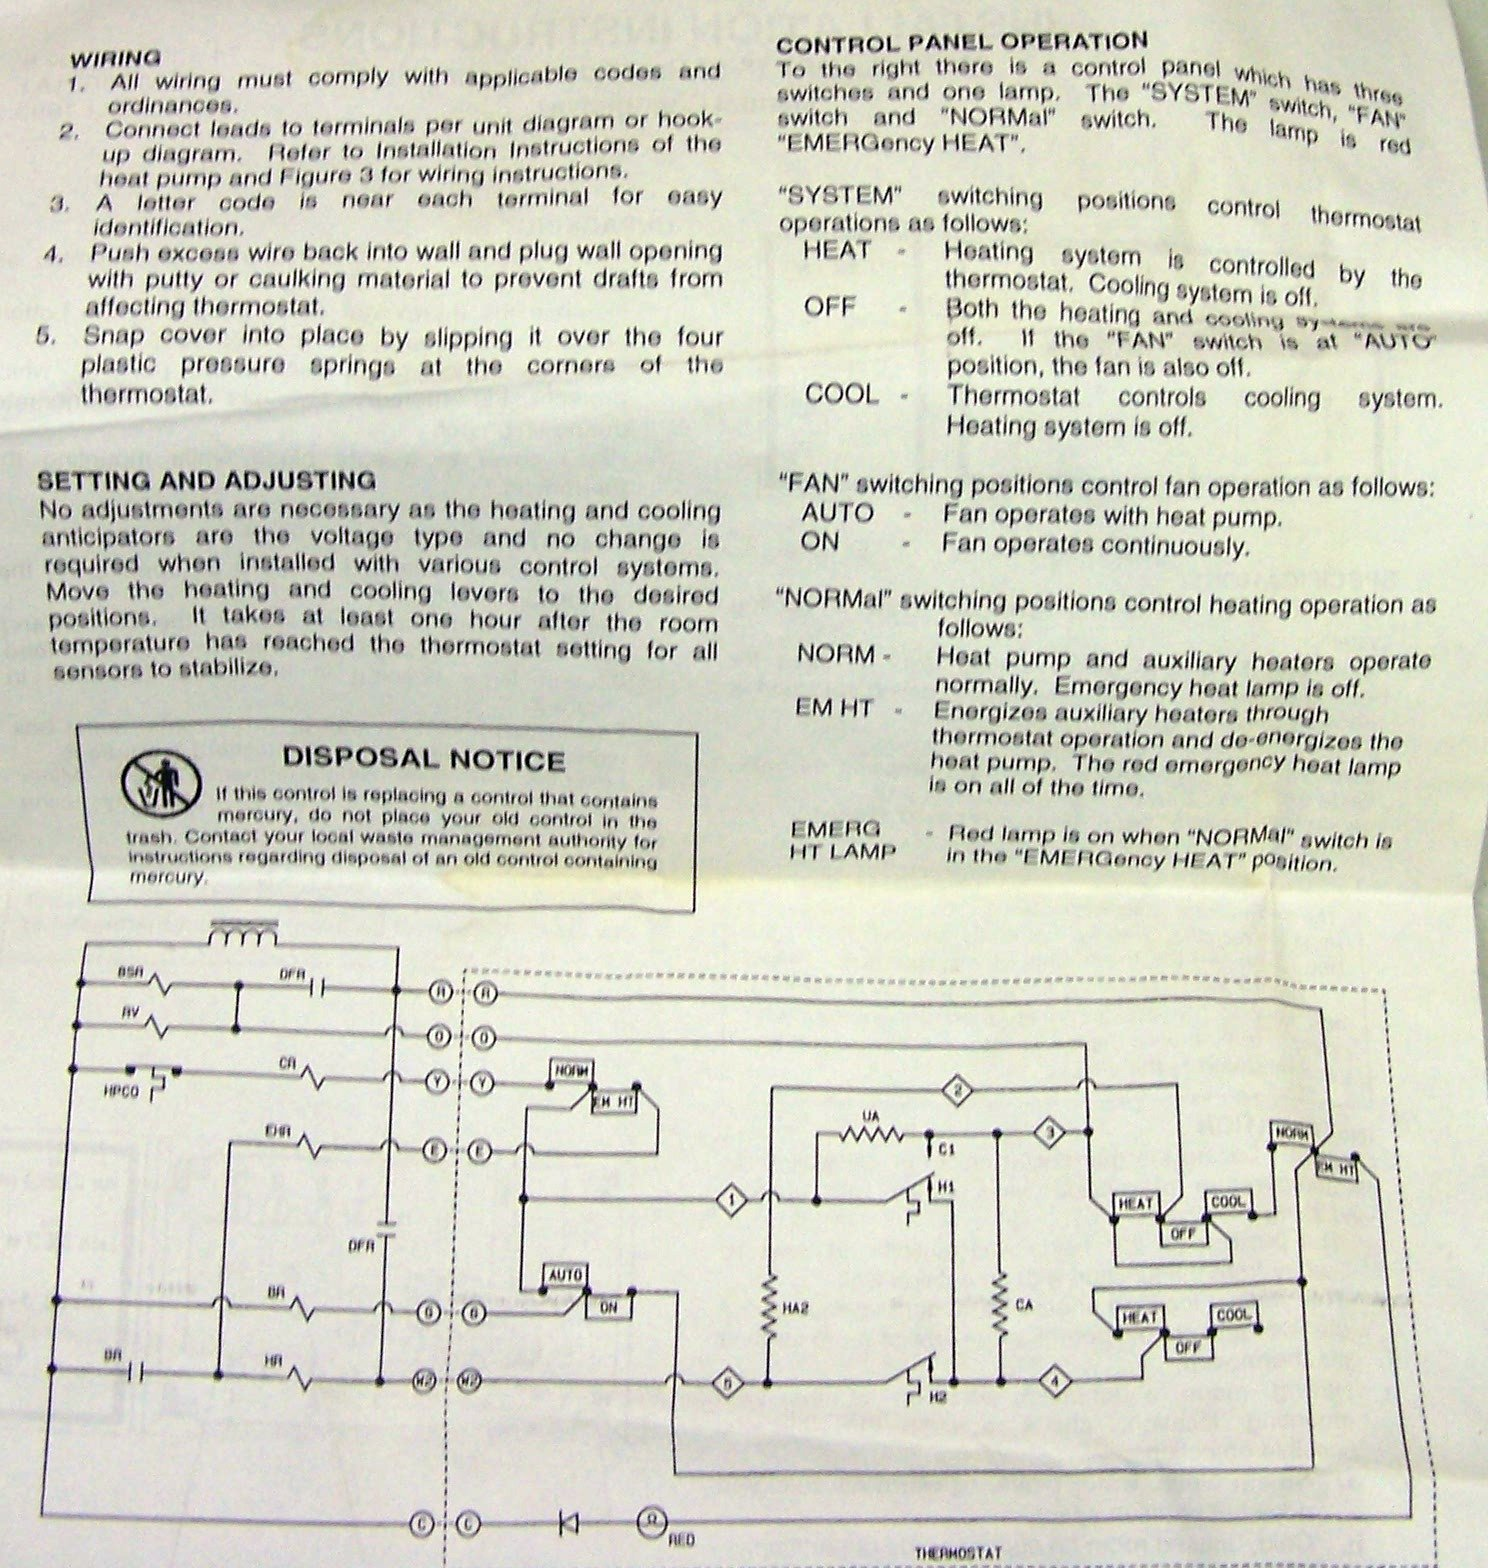 Modern Sony Cdx Sw200 Wiring Diagram Image Collection - Wiring ...